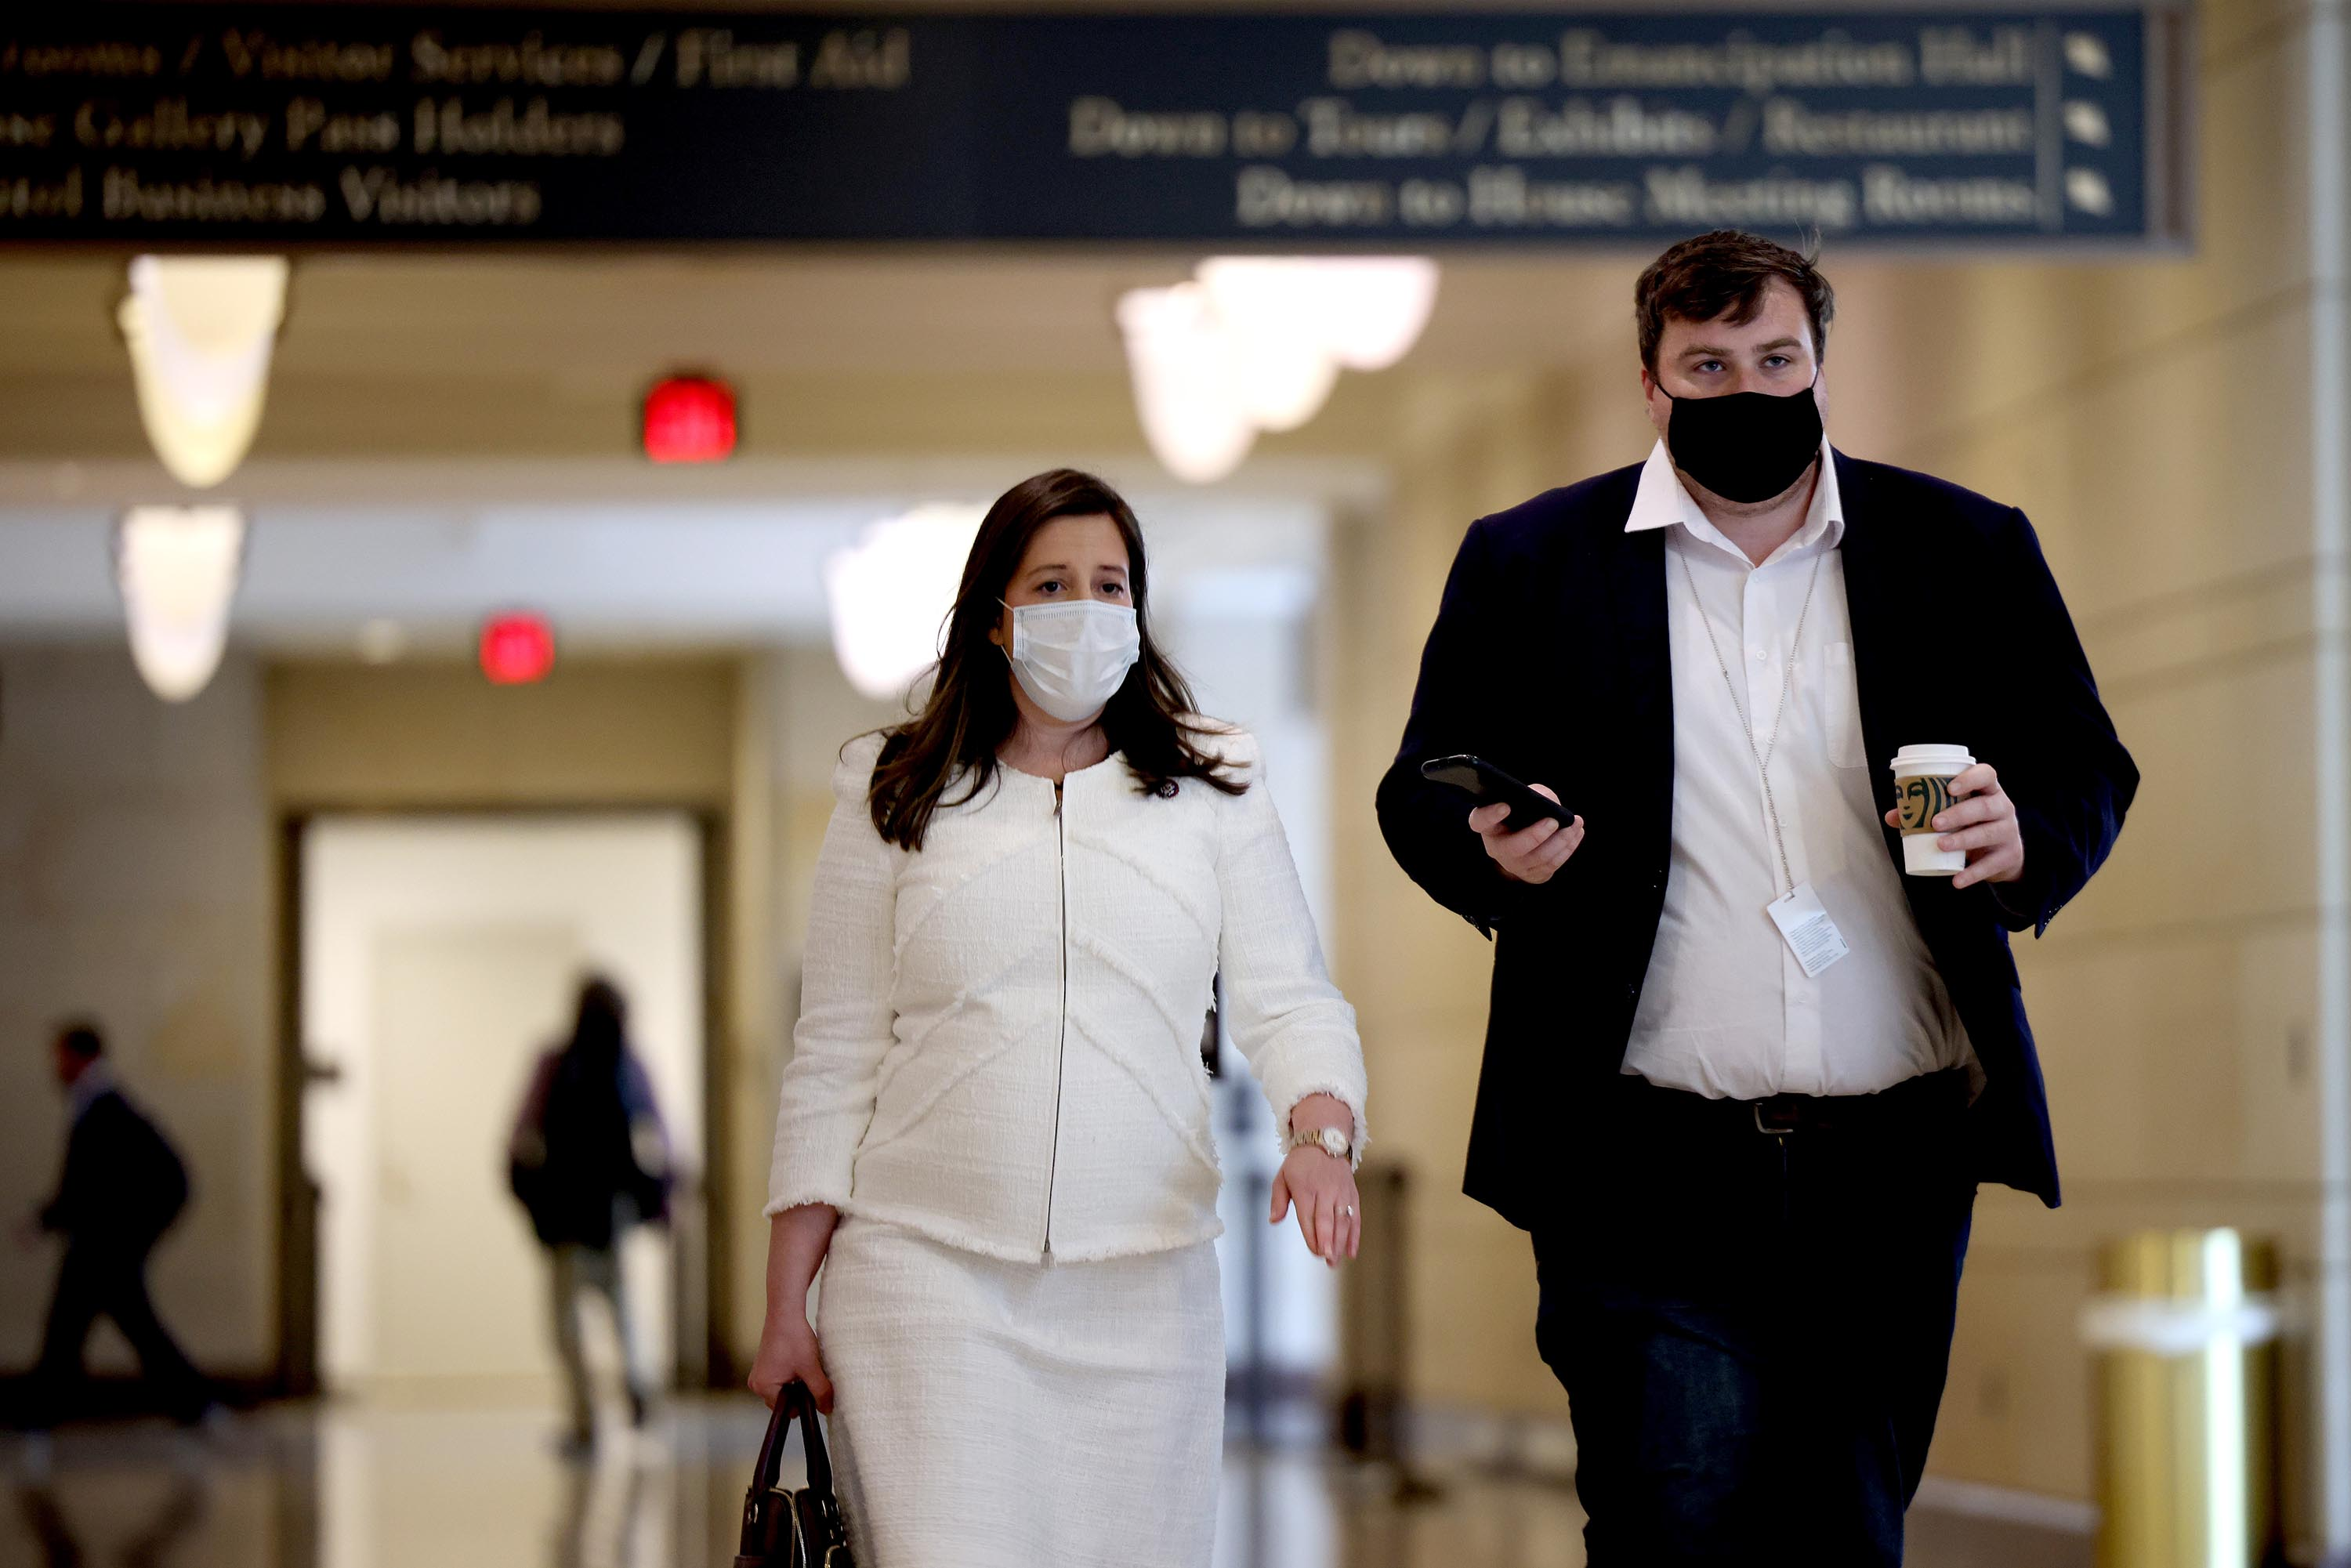 Rep. Elise Stefanik speaks with a reporter as she arrives for a caucus meeting in the U.S. Capitol Visitors Center on May 12, 2021 in Washington, DC.